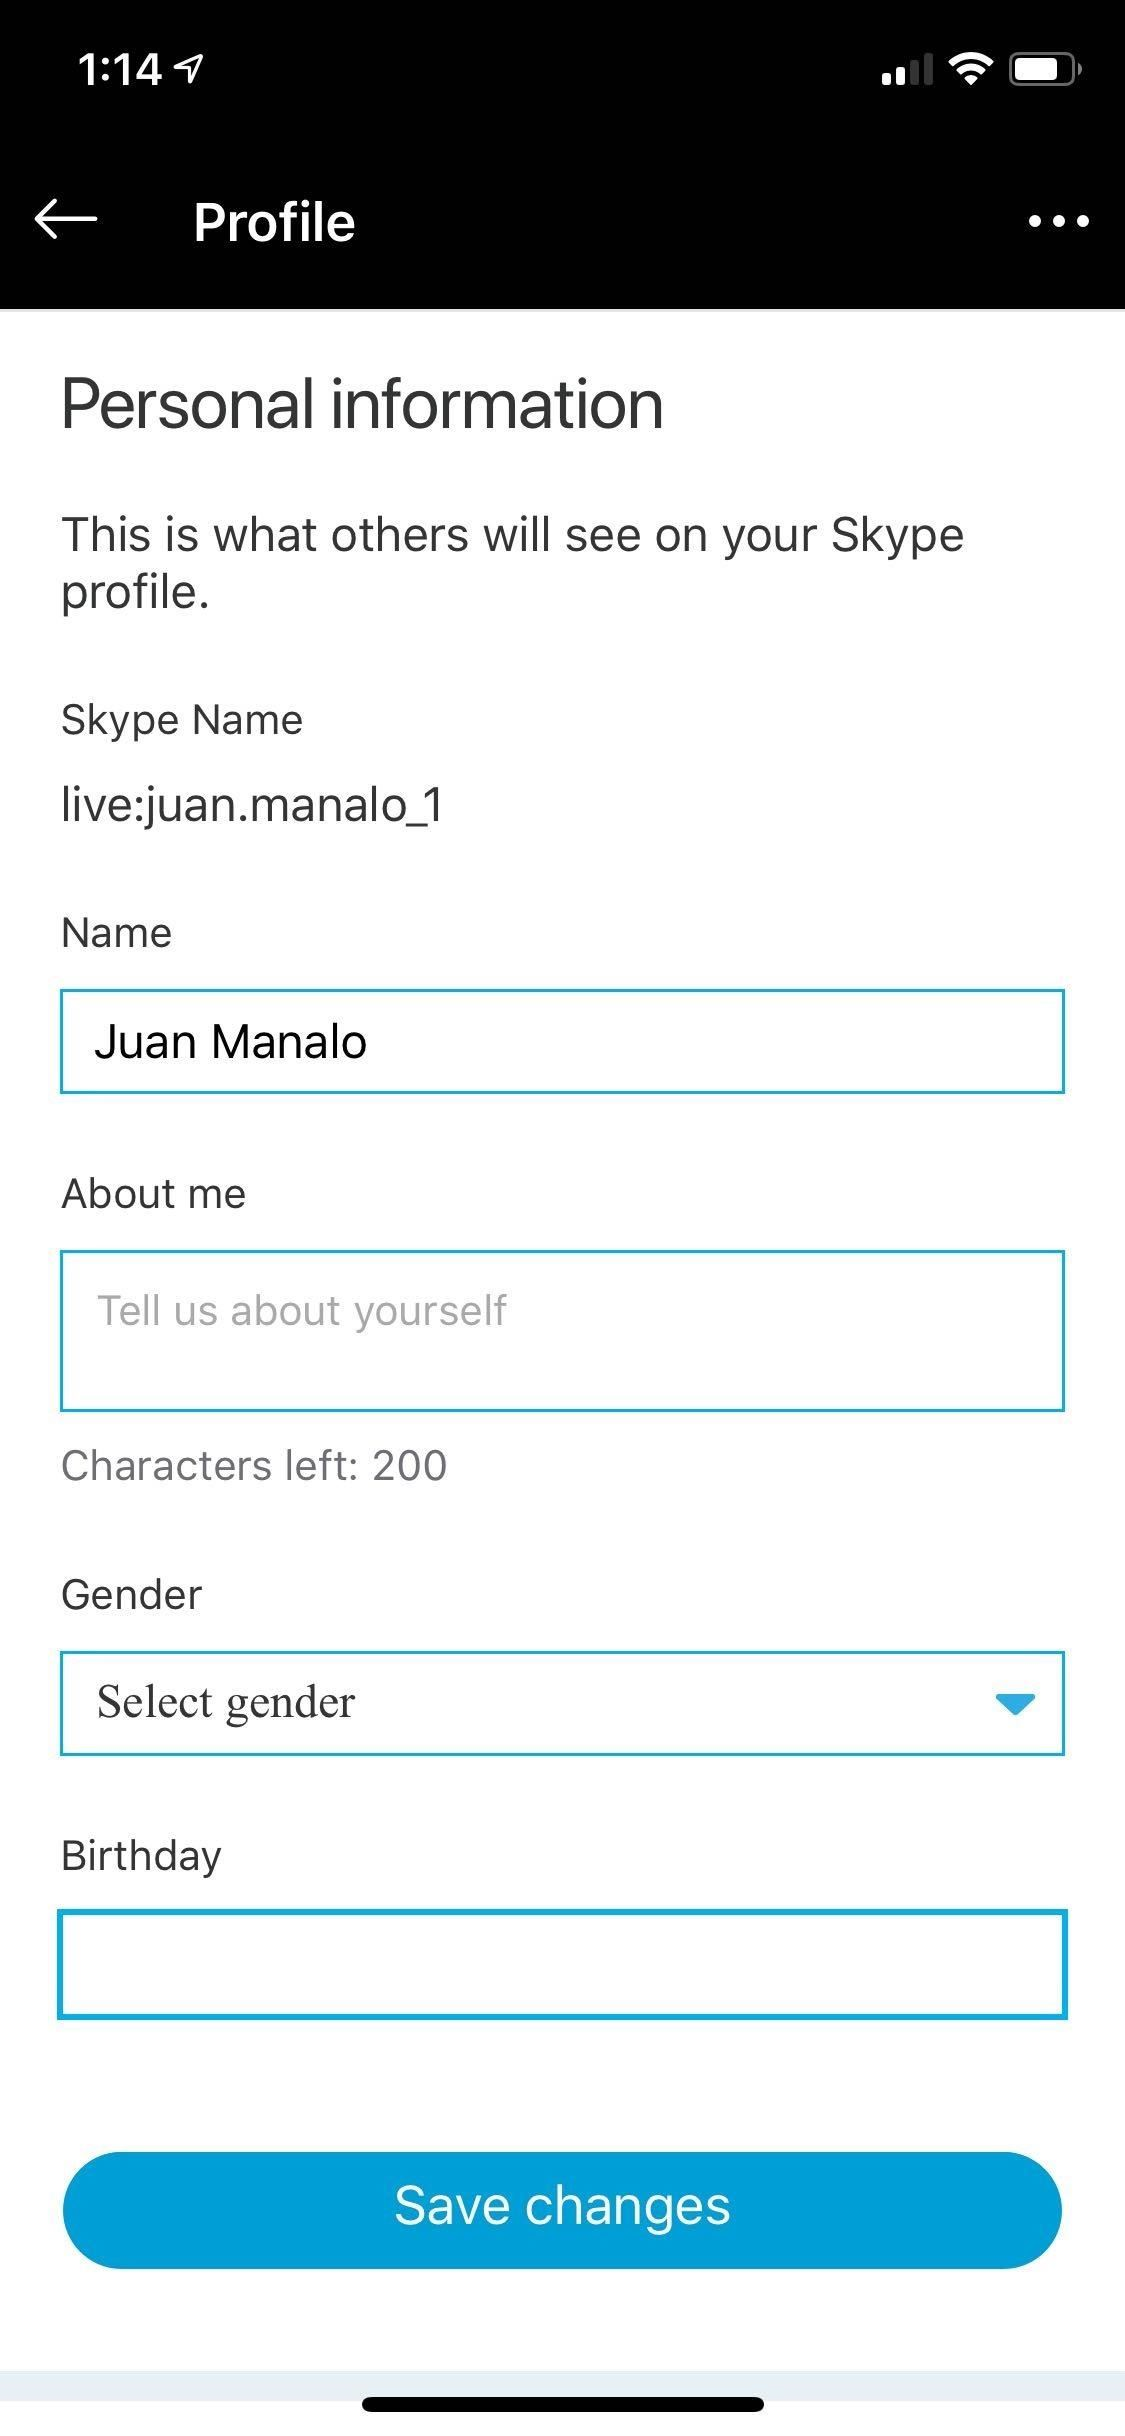 Change Your Display Name on Skype to Stand Out More